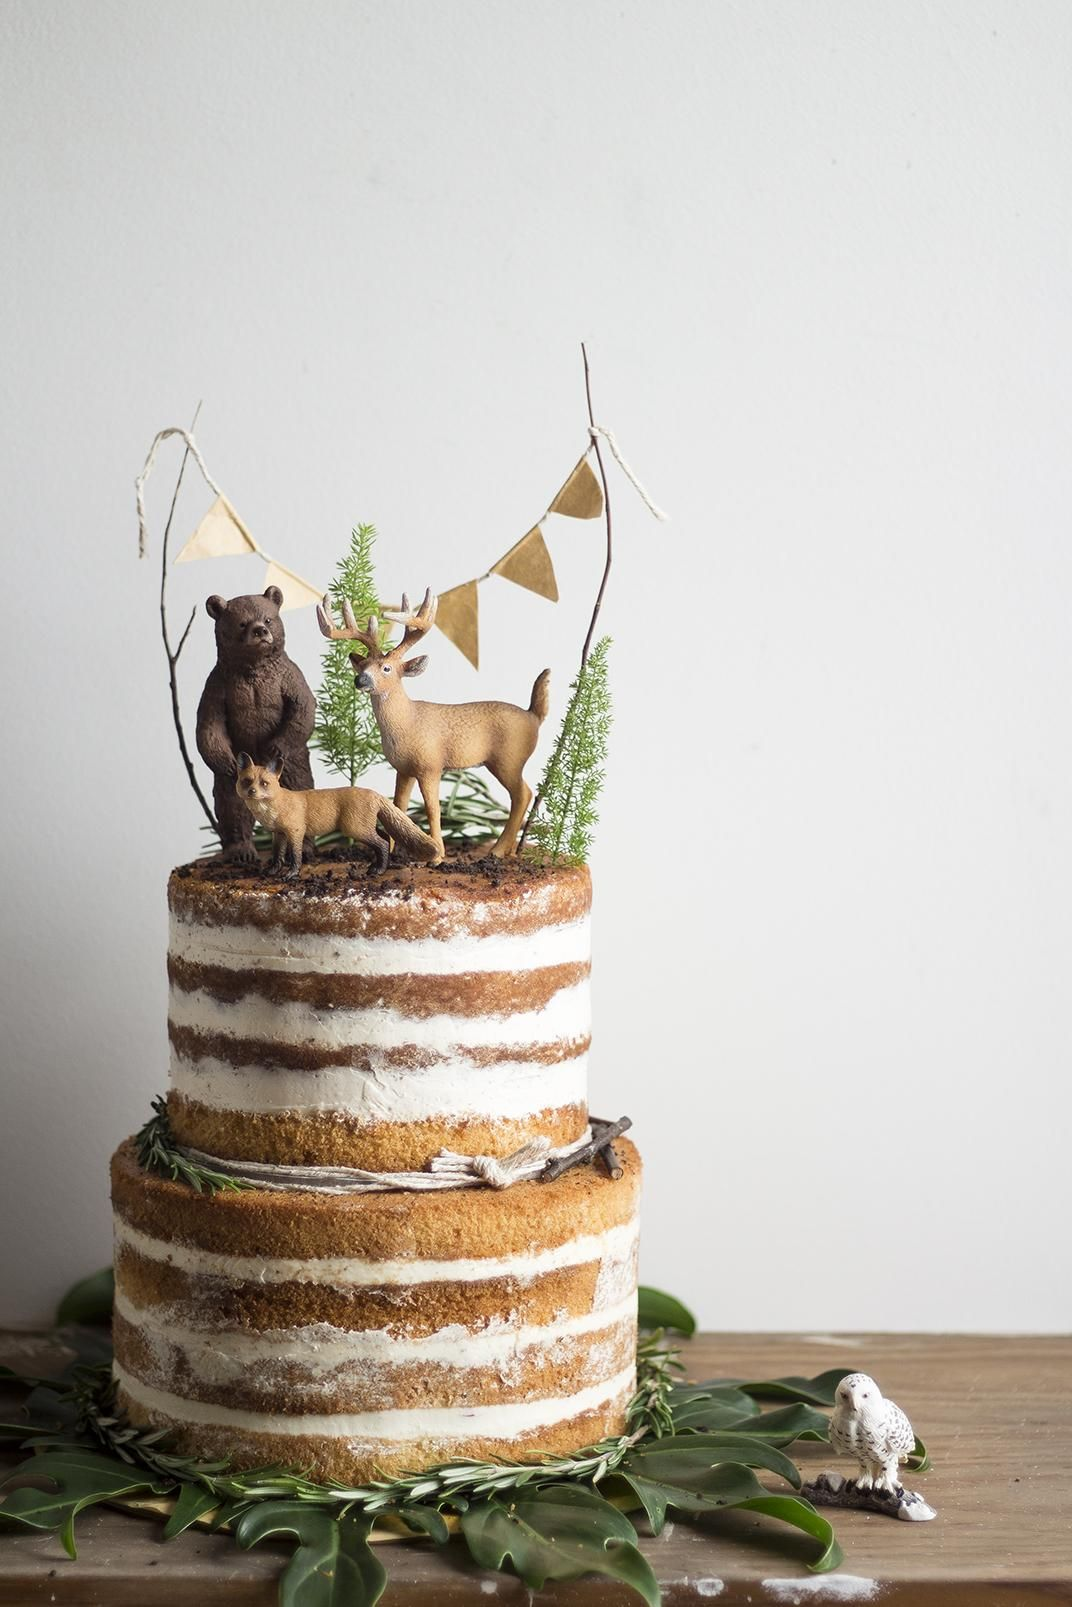 Ideas to Decorate Cakes with Toy Animals | Pinterest | Woodland cake ...